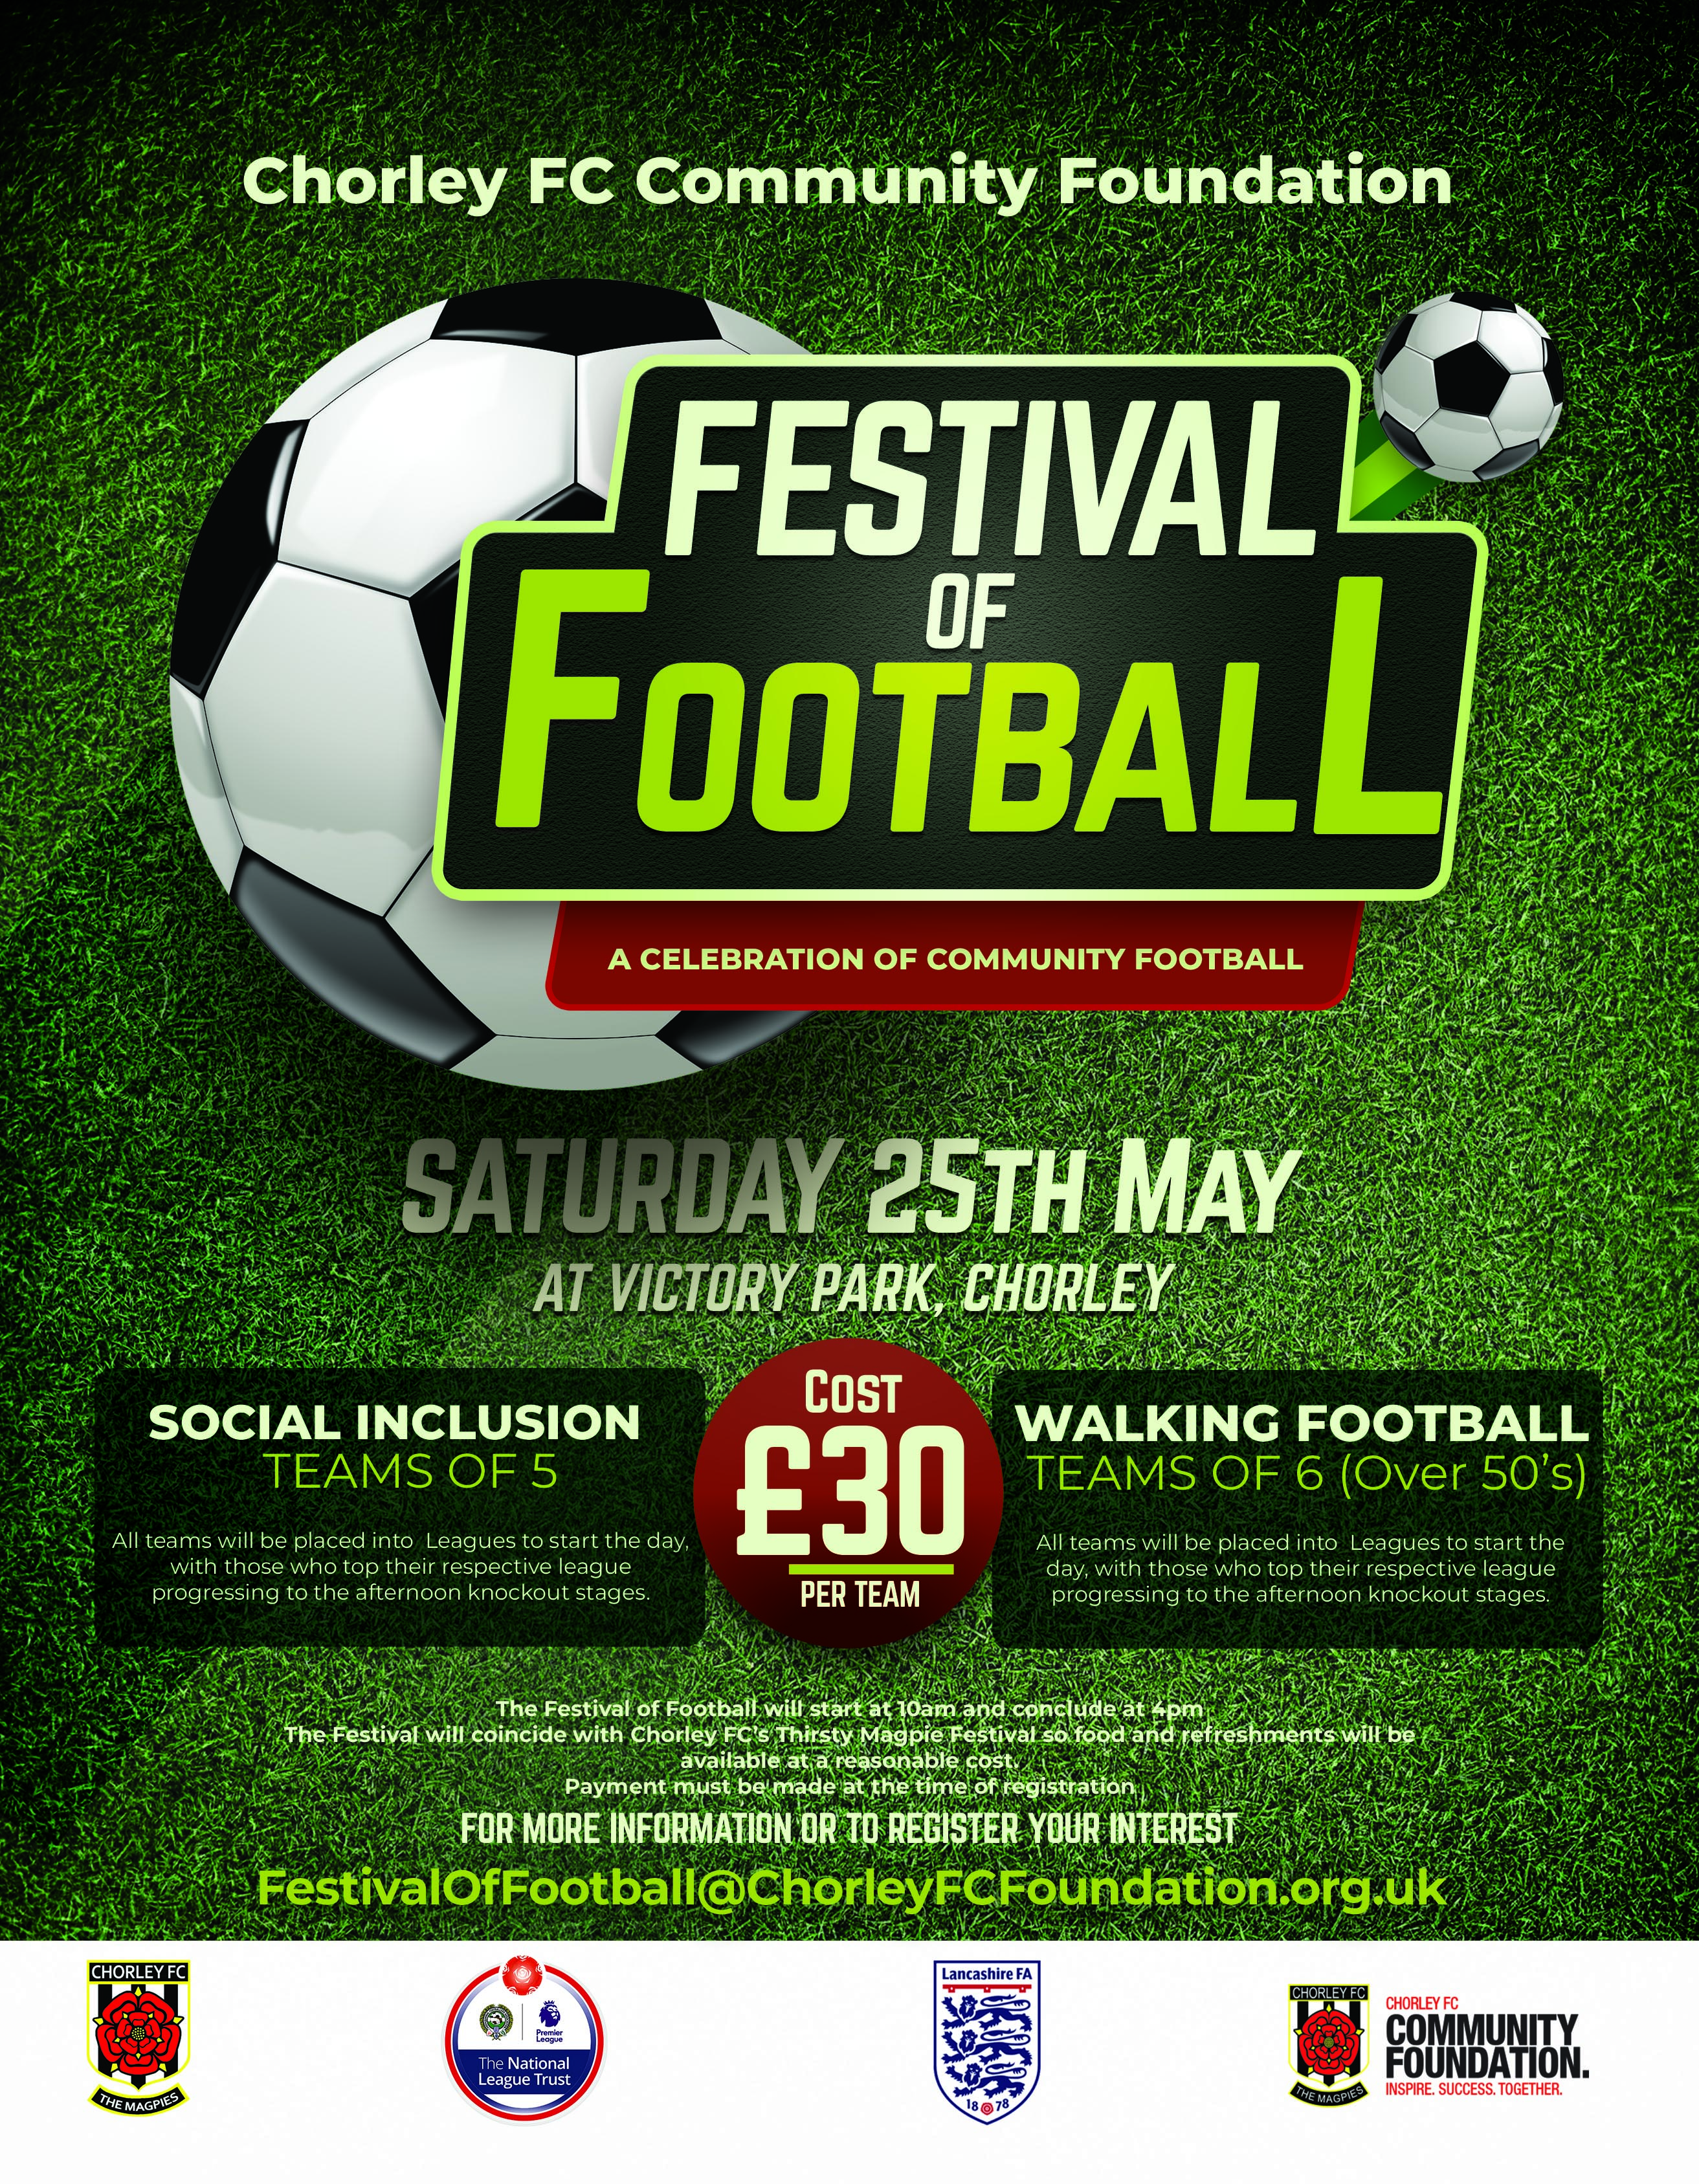 Community Foundation launches 'Festival of Football'